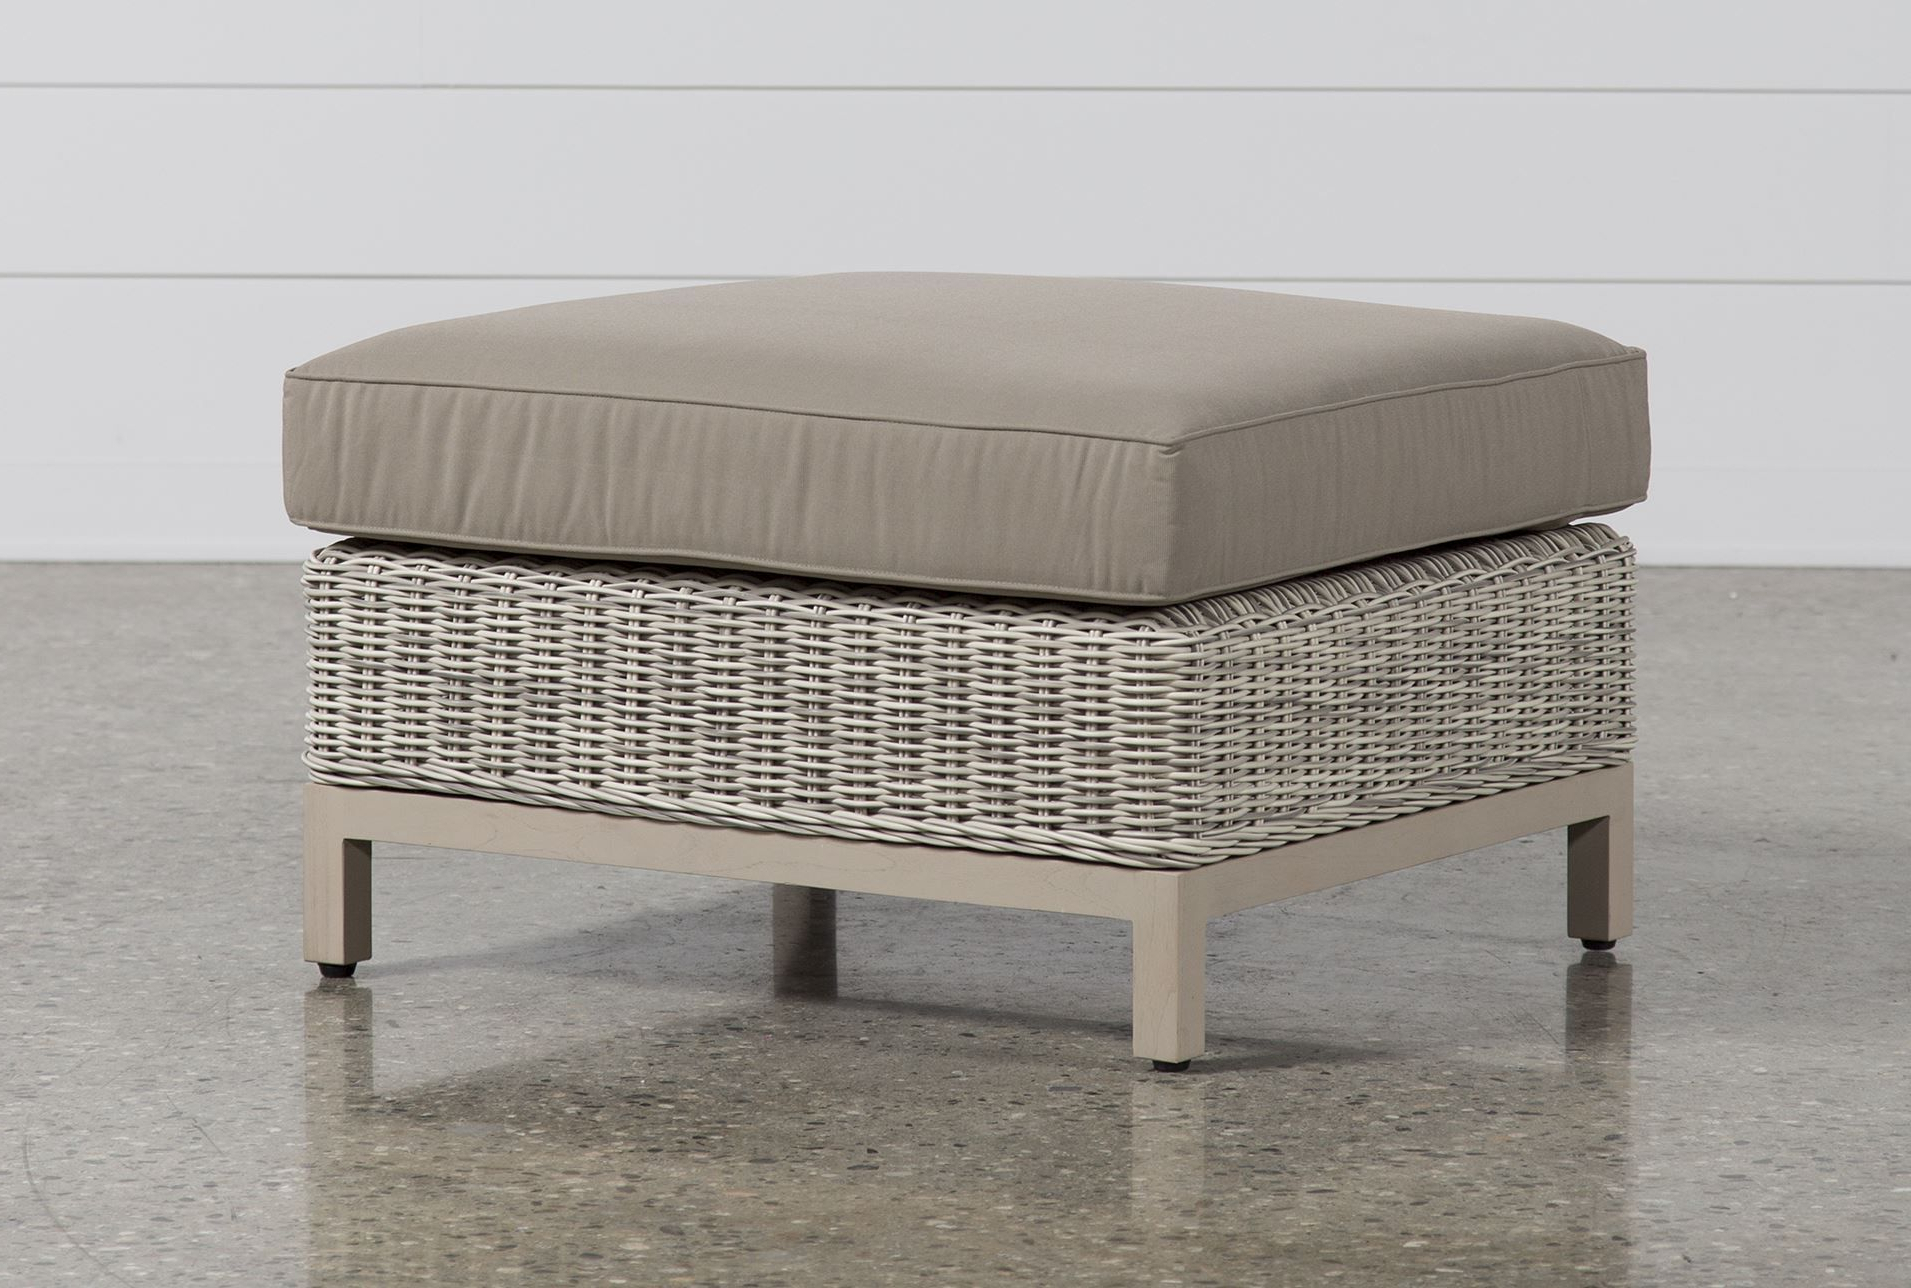 Santorini Ottoman – Signature | 3rd Home | Pinterest | Ottoman Pertaining To Parsons Travertine Top & Dark Steel Base 48x16 Console Tables (View 16 of 20)